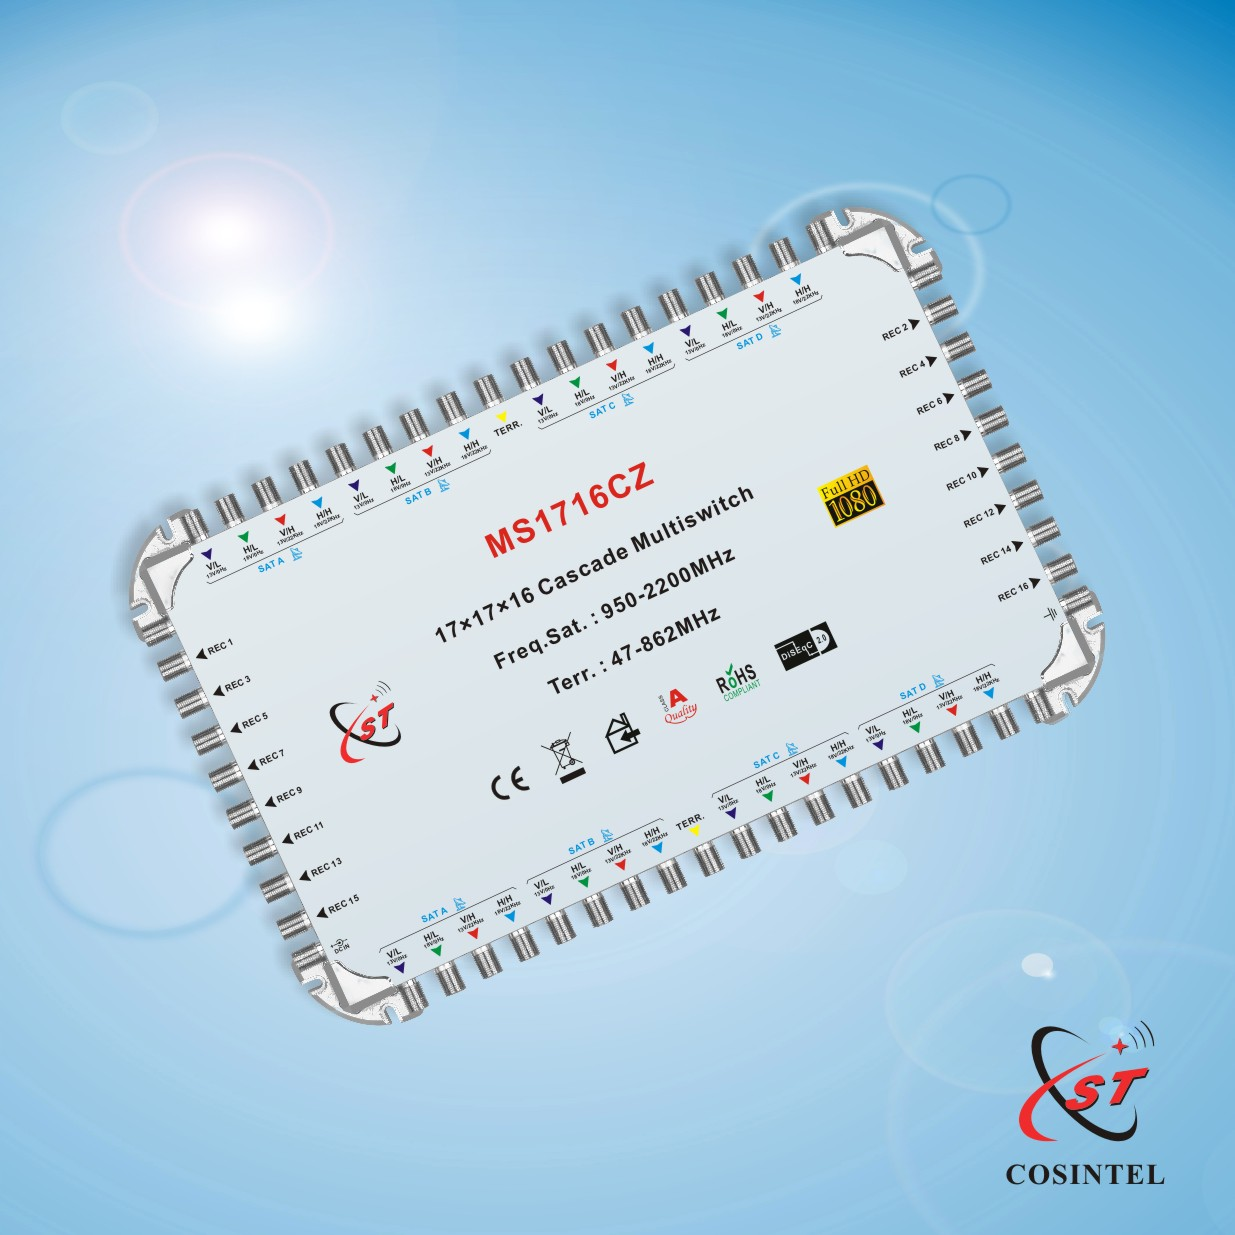 17 in 16 Cascade Satellite Multi switch with Zinc Die-casting Housing